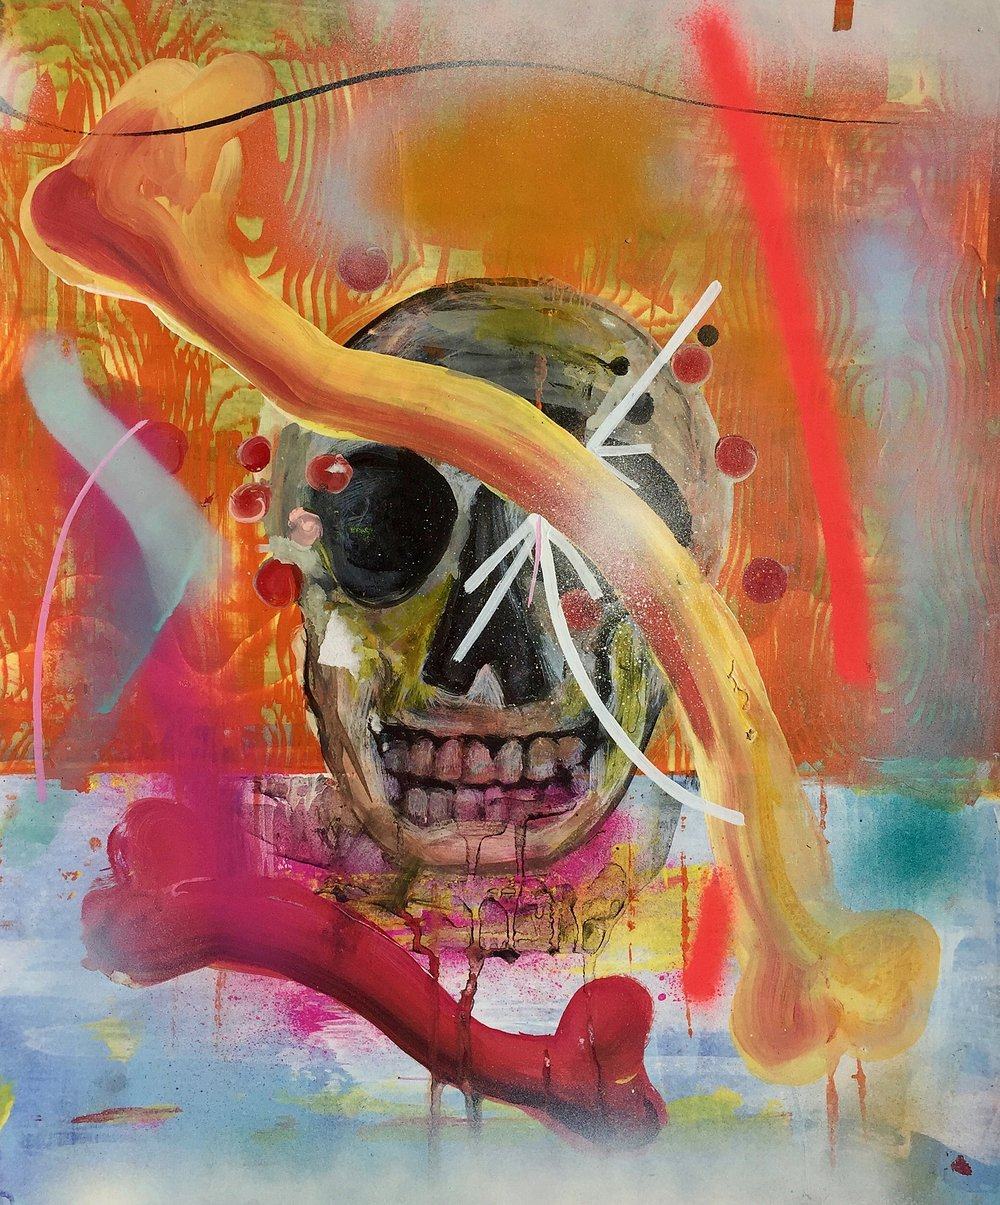 Skull & Bones     Mixed media on paper  2007  14 x 17 In  $3,000.00